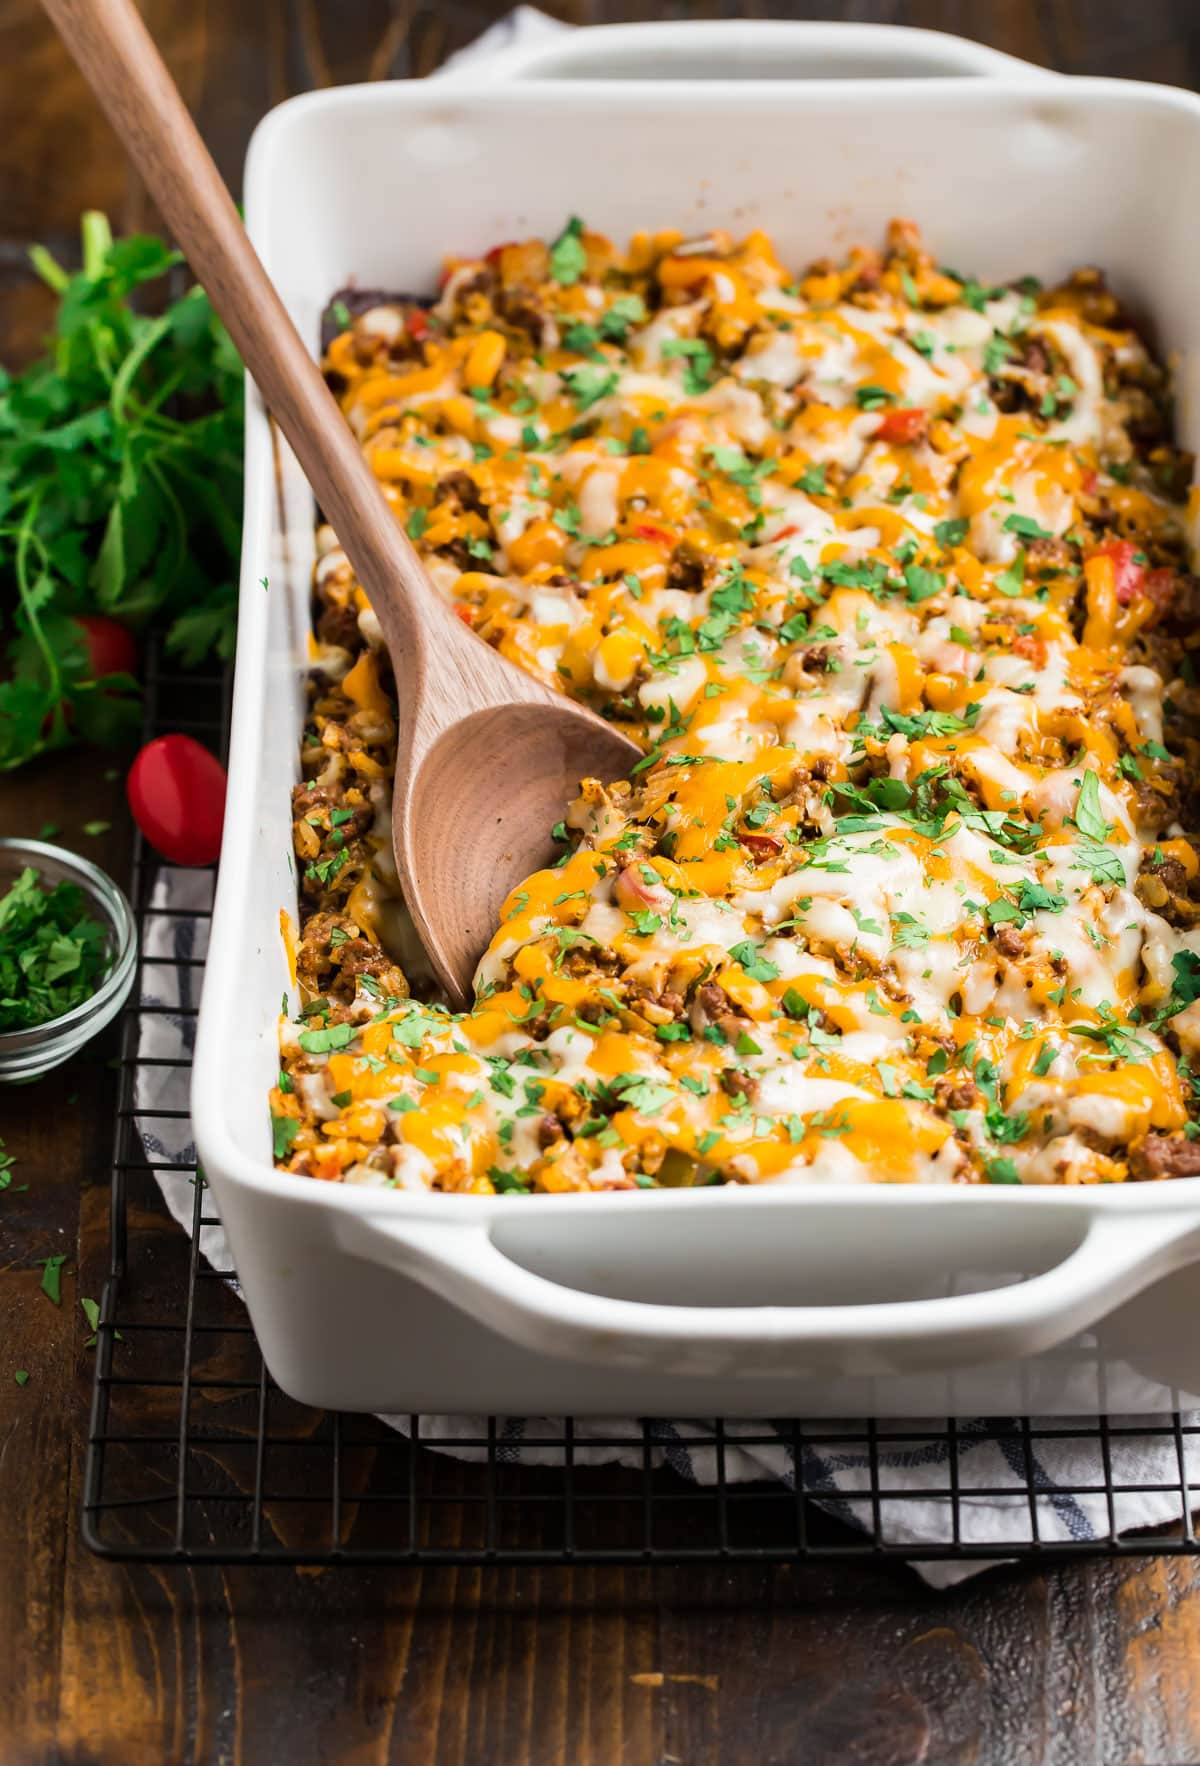 A healthy and easy casserole in a baking dish